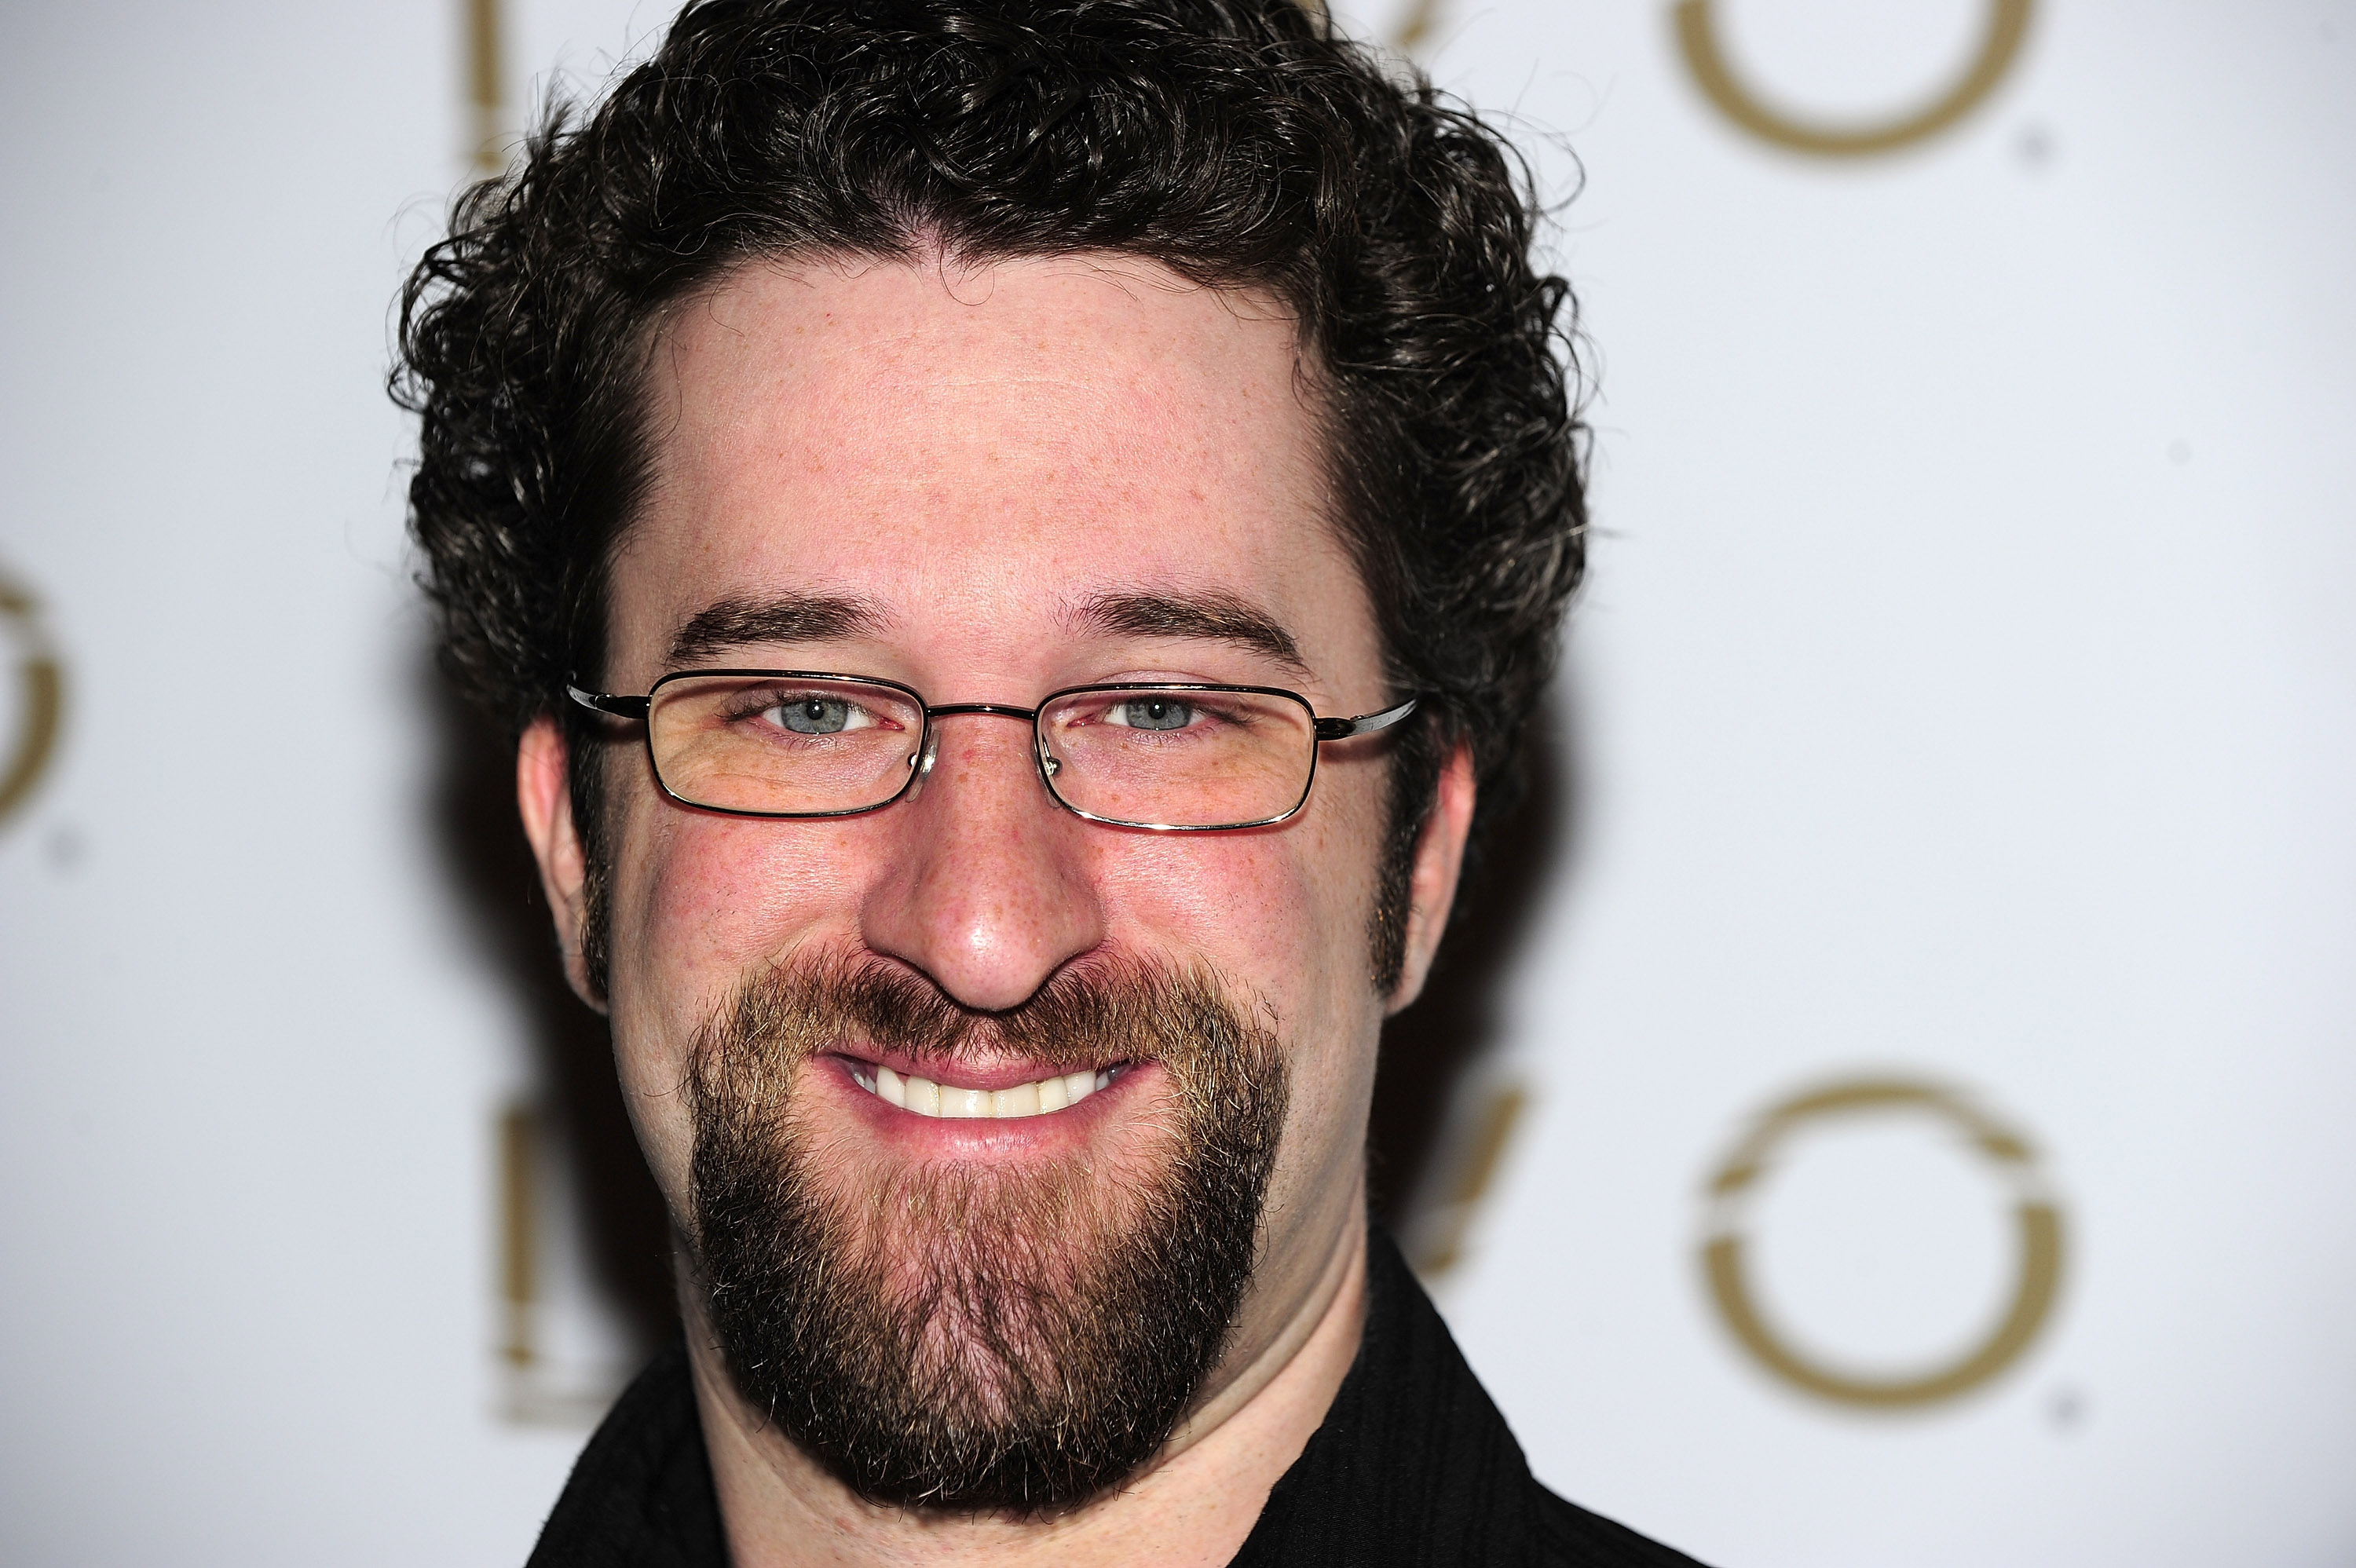 Dustin Diamond Charged With Felony After Stabbing Incident